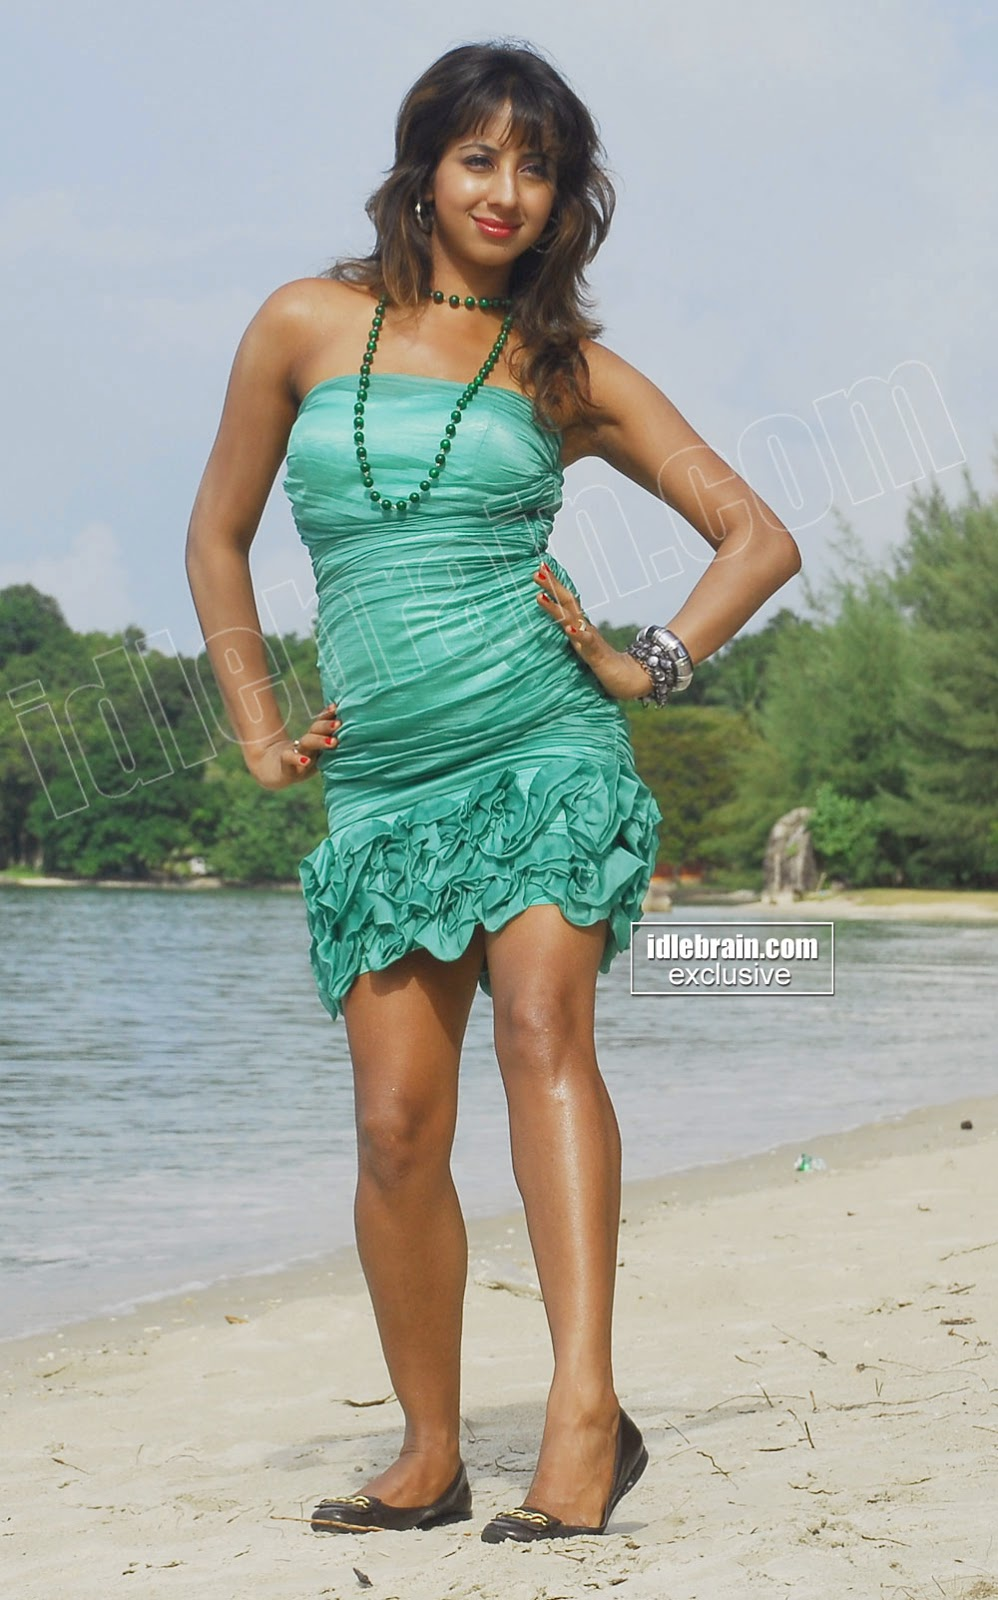 Sanjana grenn mini skirt at beach